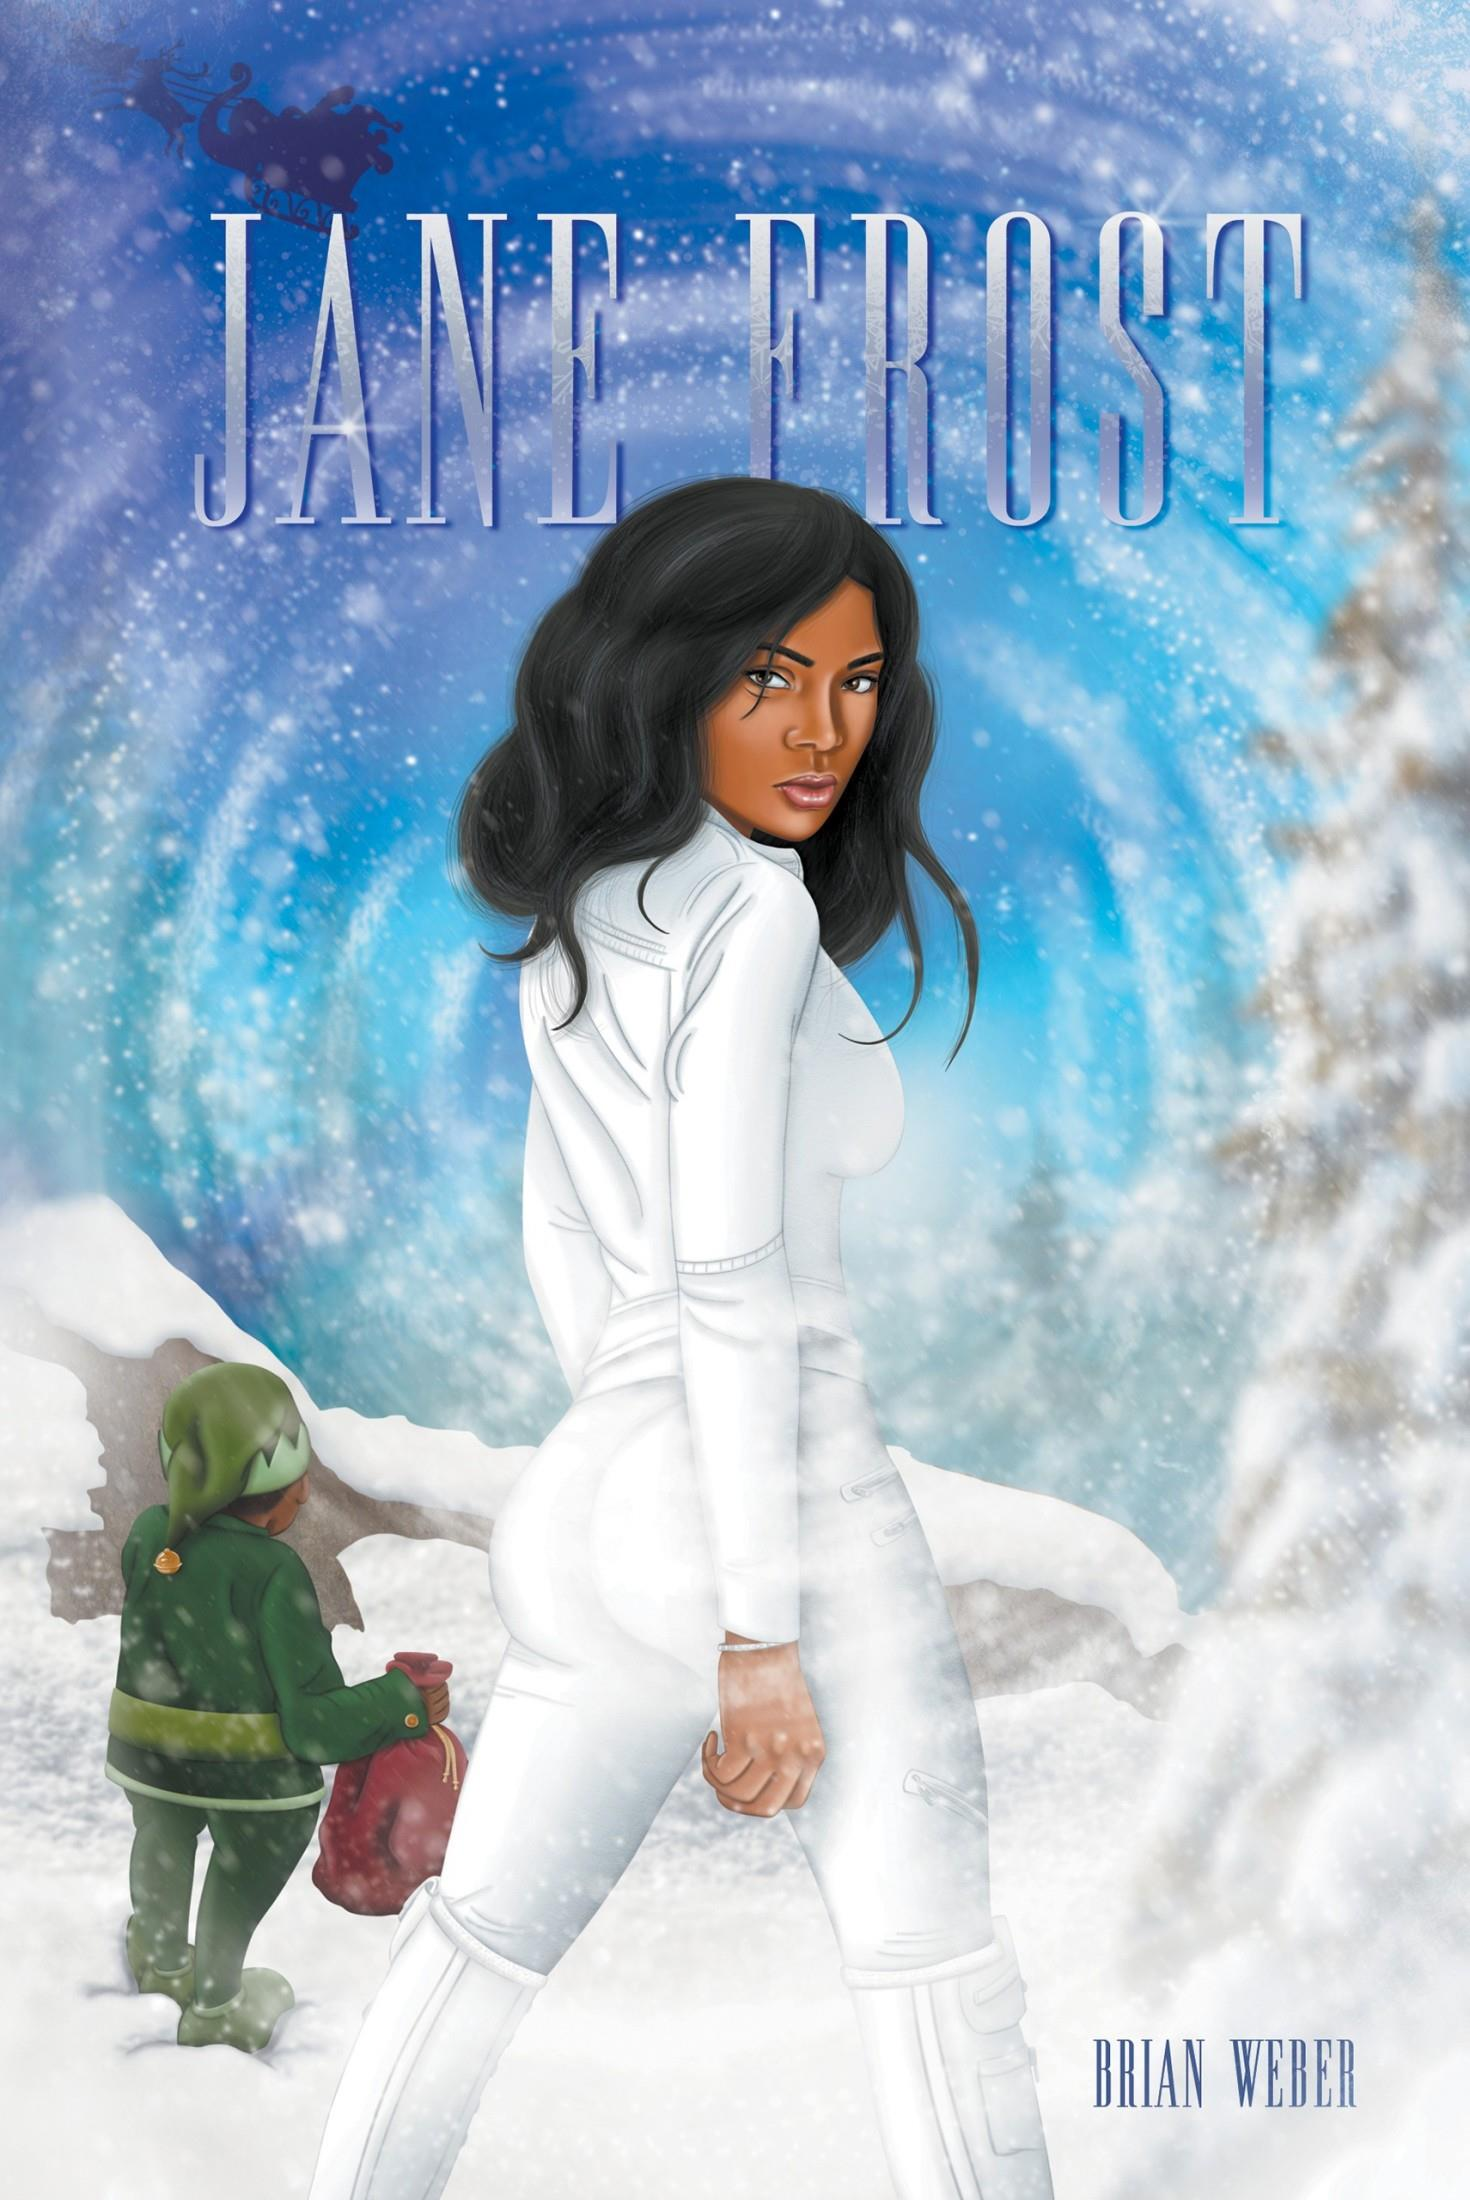 """New novel """"Jane Frost"""" by Brian Weber is released, a unique take on holiday stories that combines familiar elements into a brand-new Christmas-themed adventure 6"""